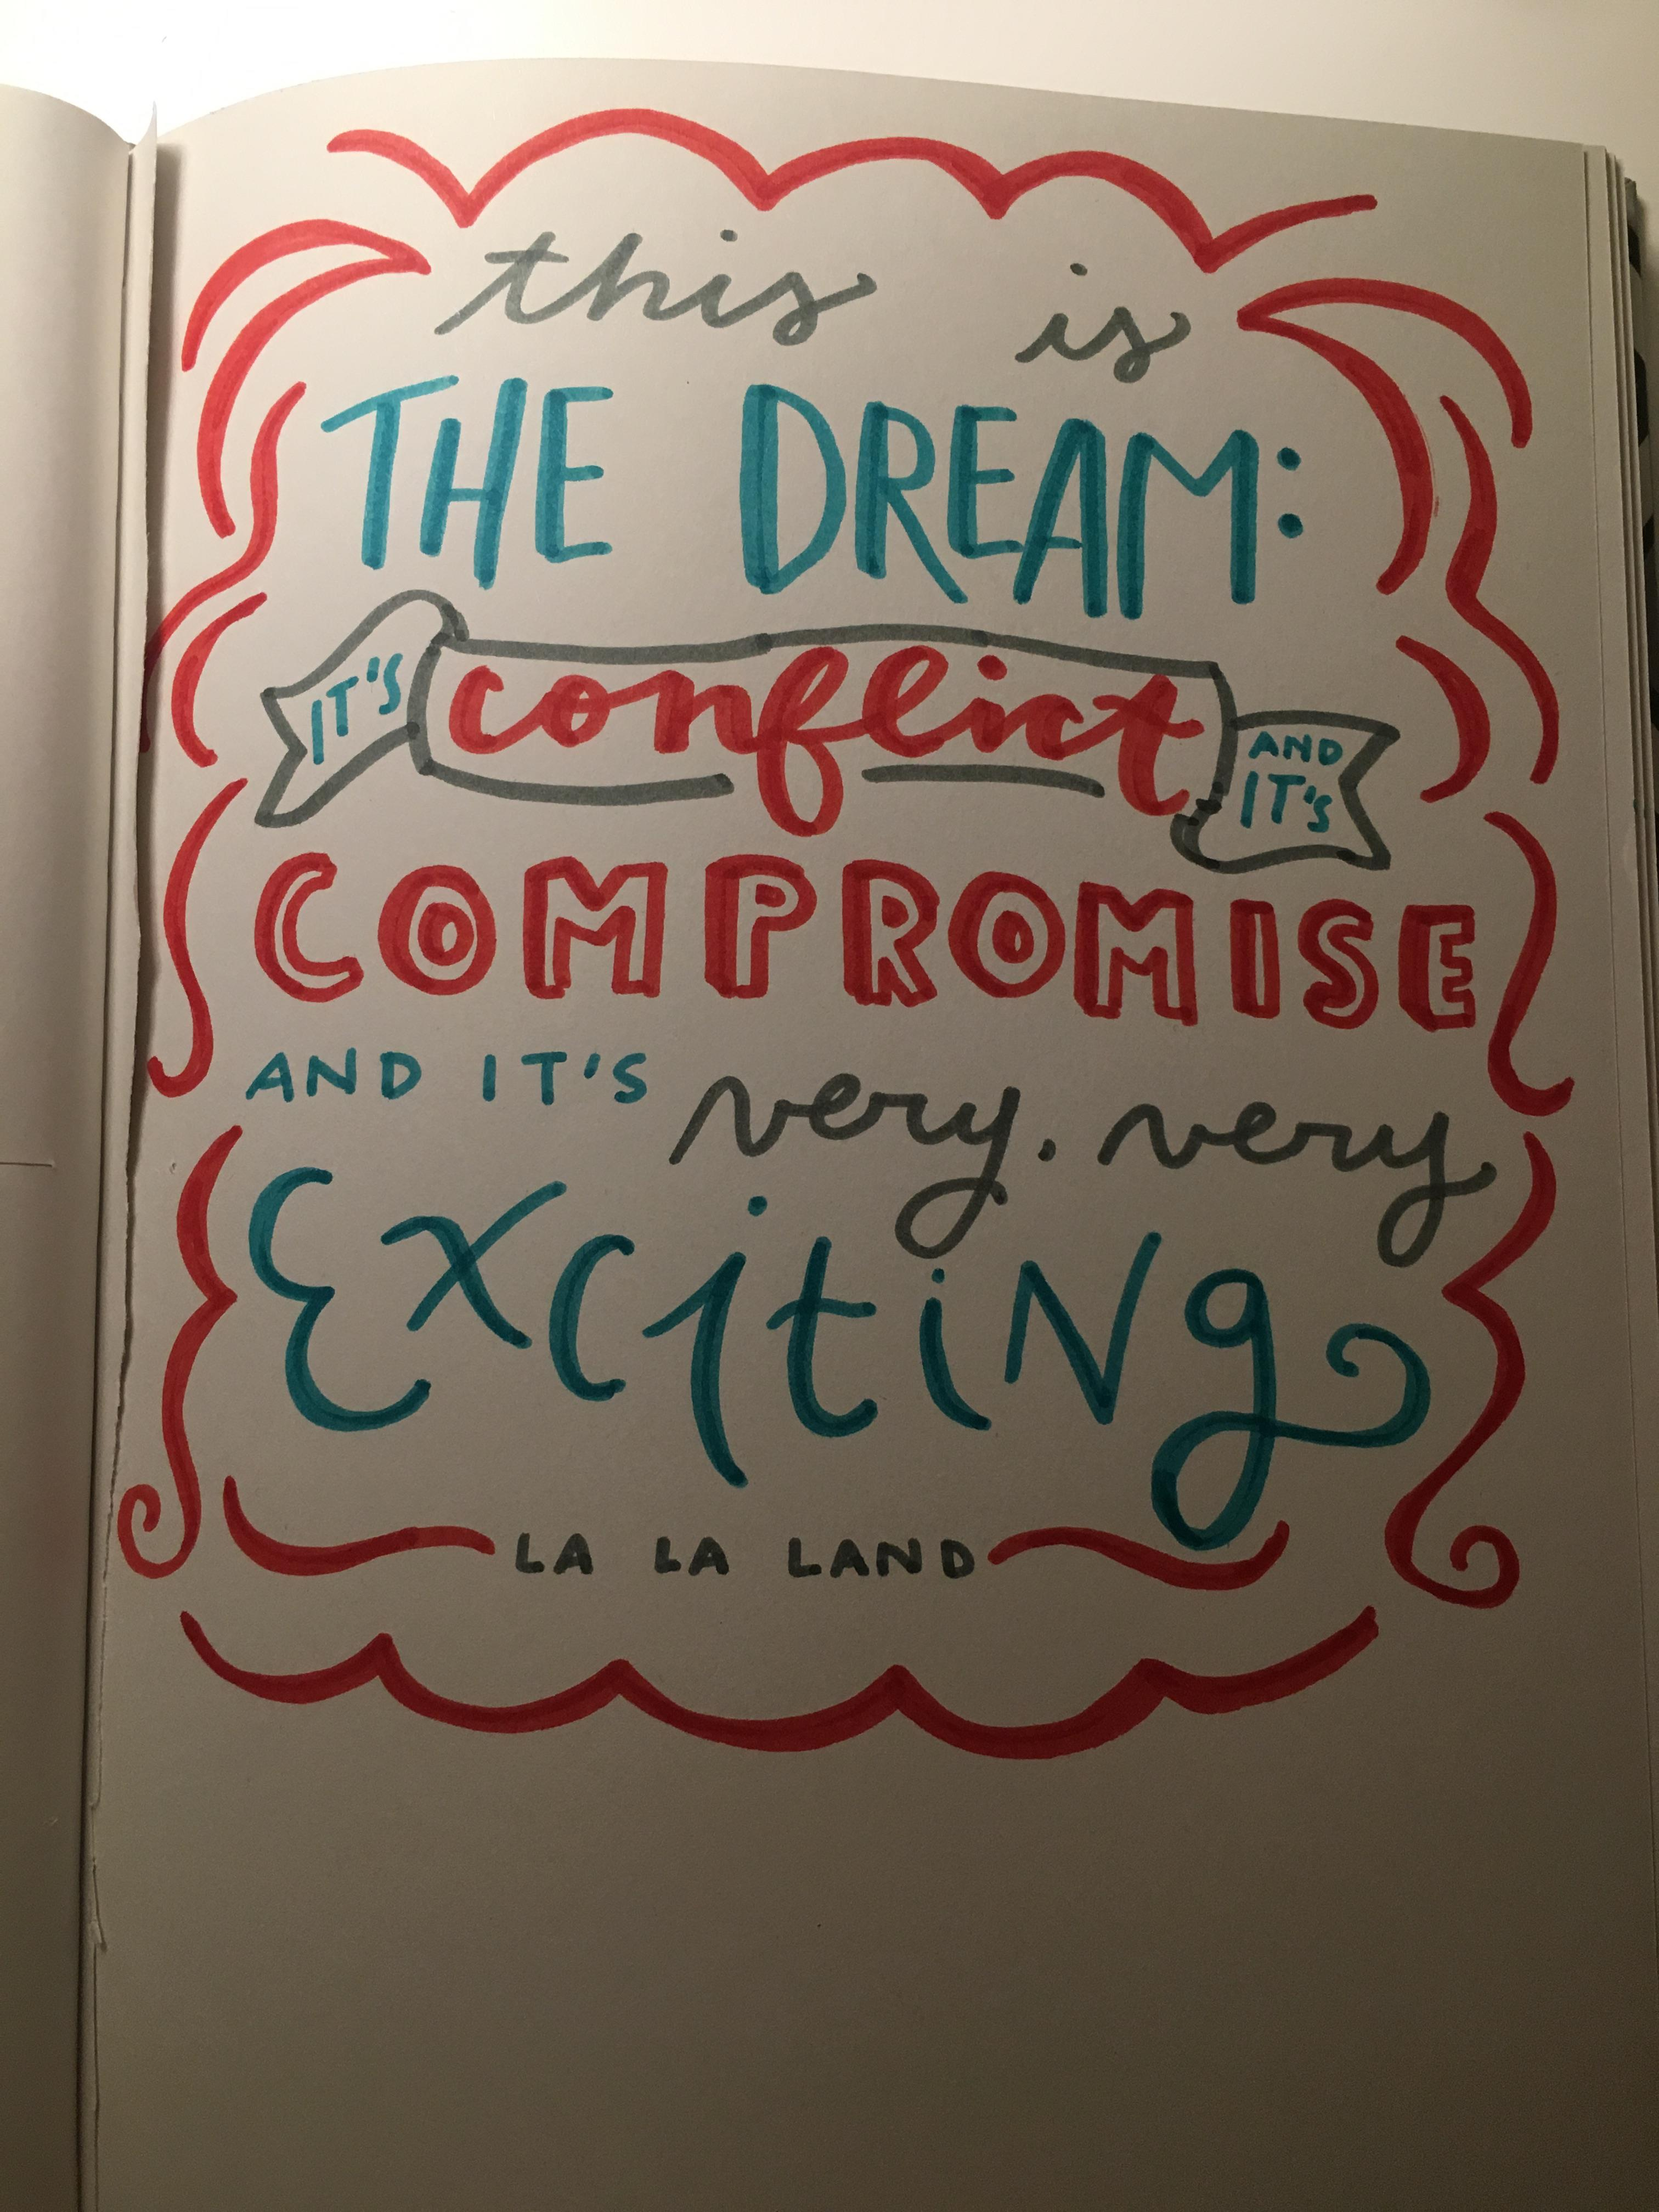 "Art of a quote: ""This is the dream: it's conflict and it's compromise and it's very, very exciting! - La La Land"""